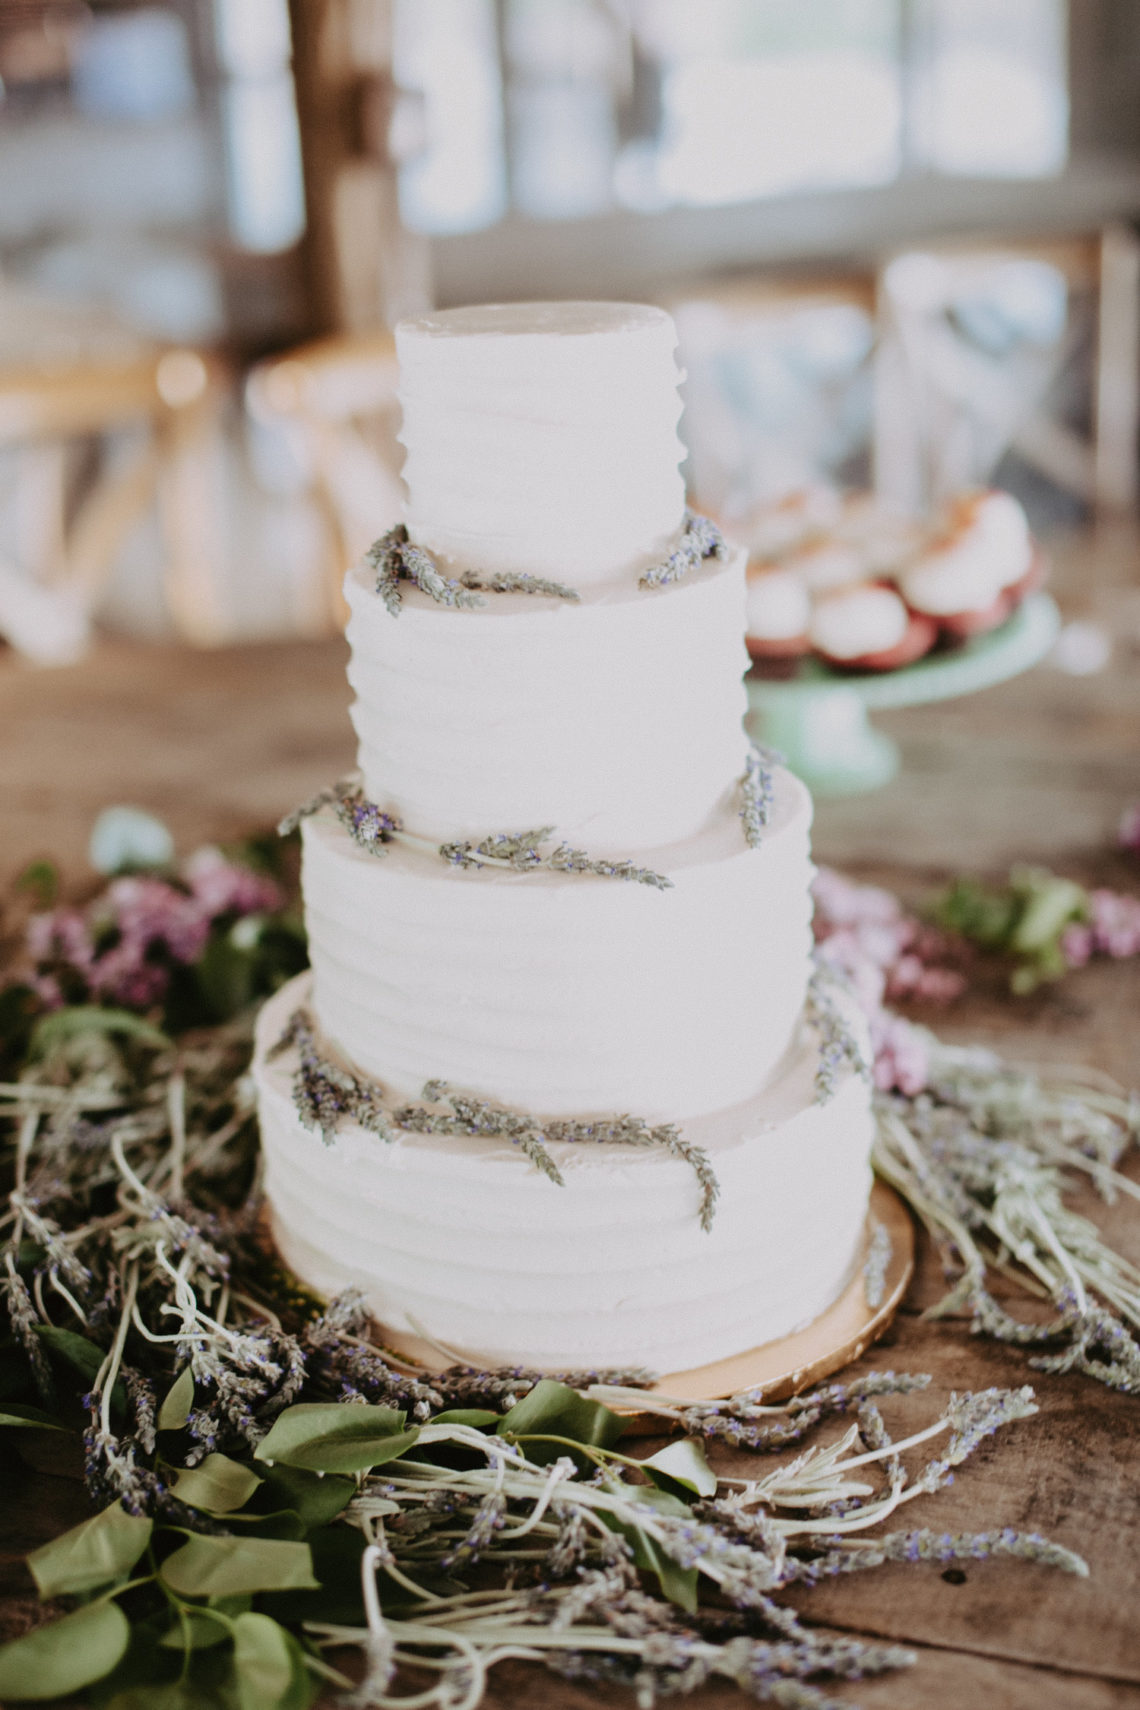 Rustic Wedding Cakes | 2tarts Bakery